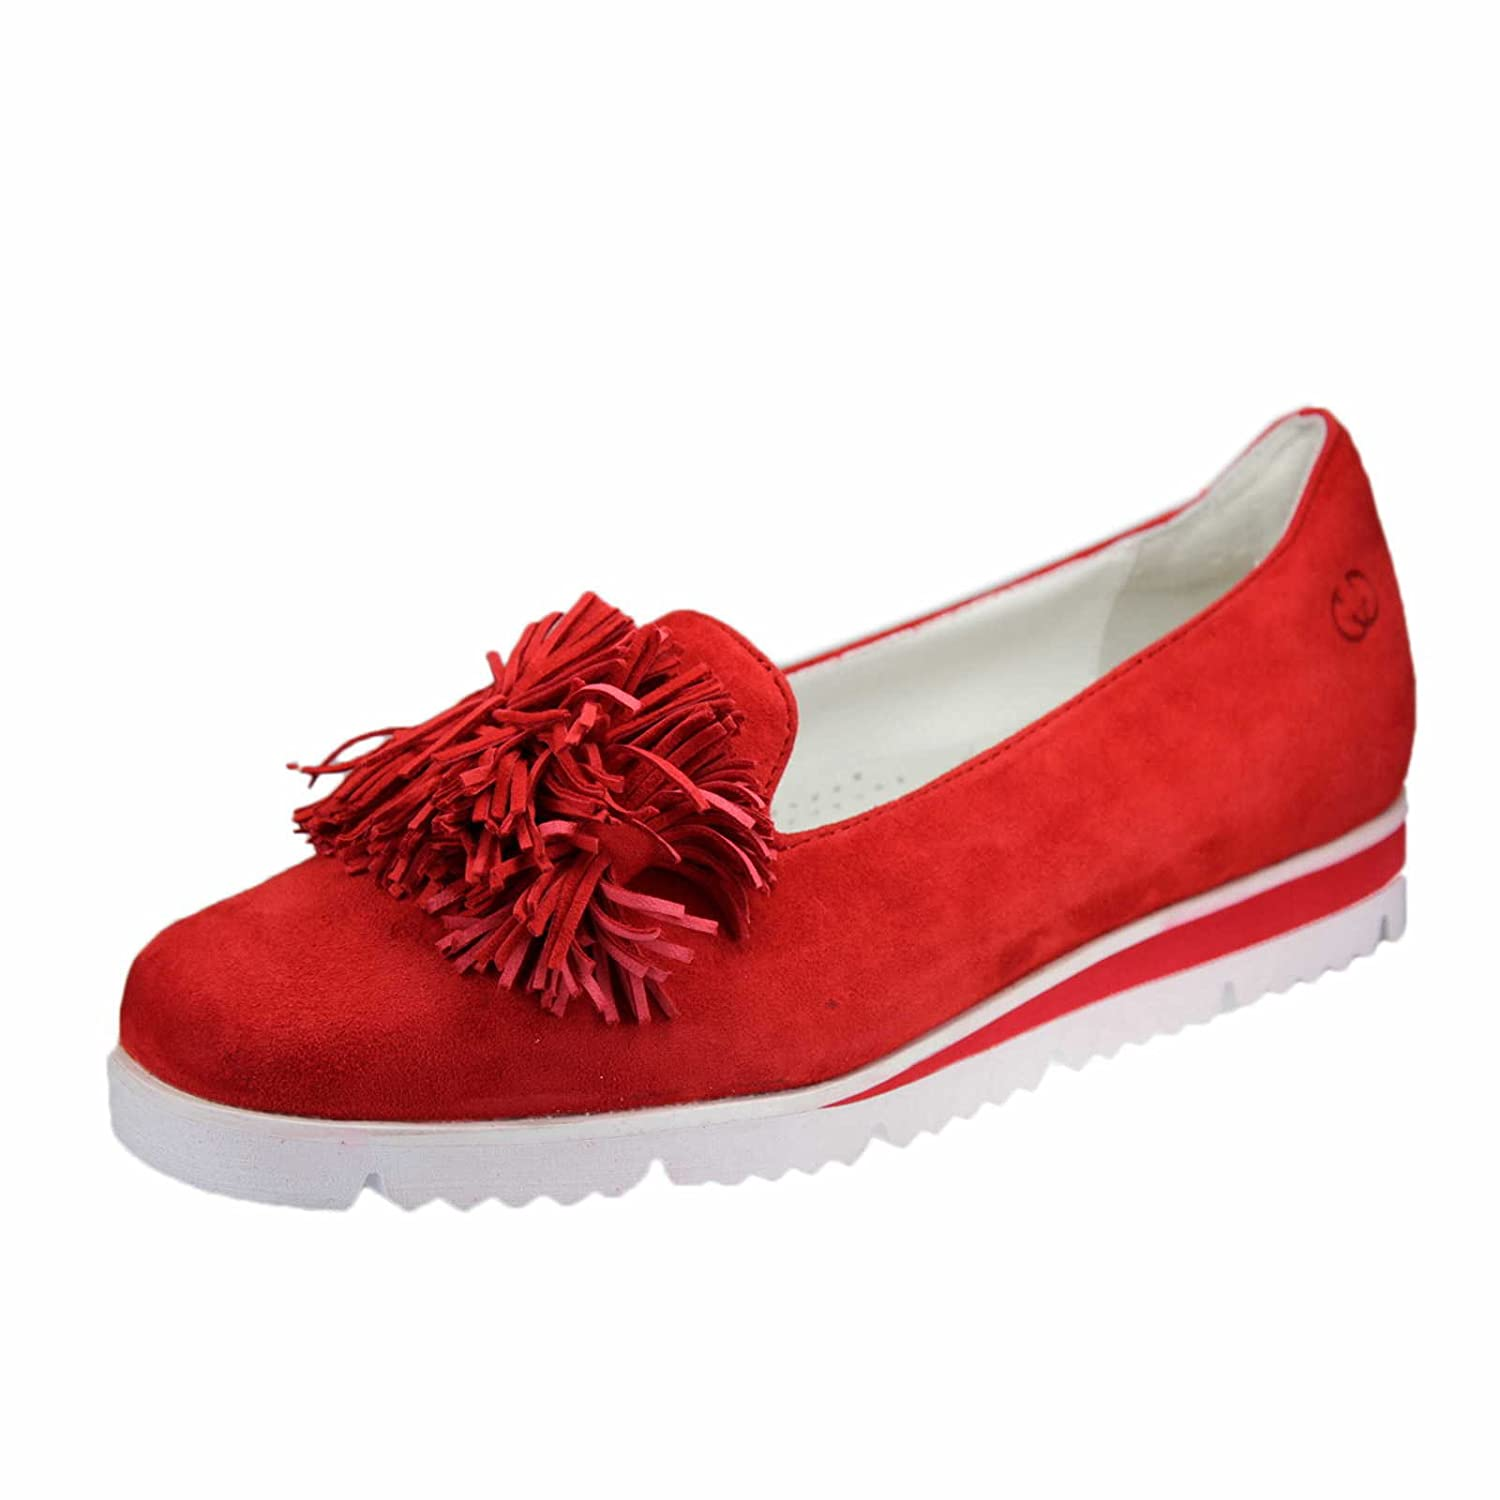 Gerry Weber Damen Slipper MIA 08 08 08 G6210832 400 rot 430864 1b5cb8